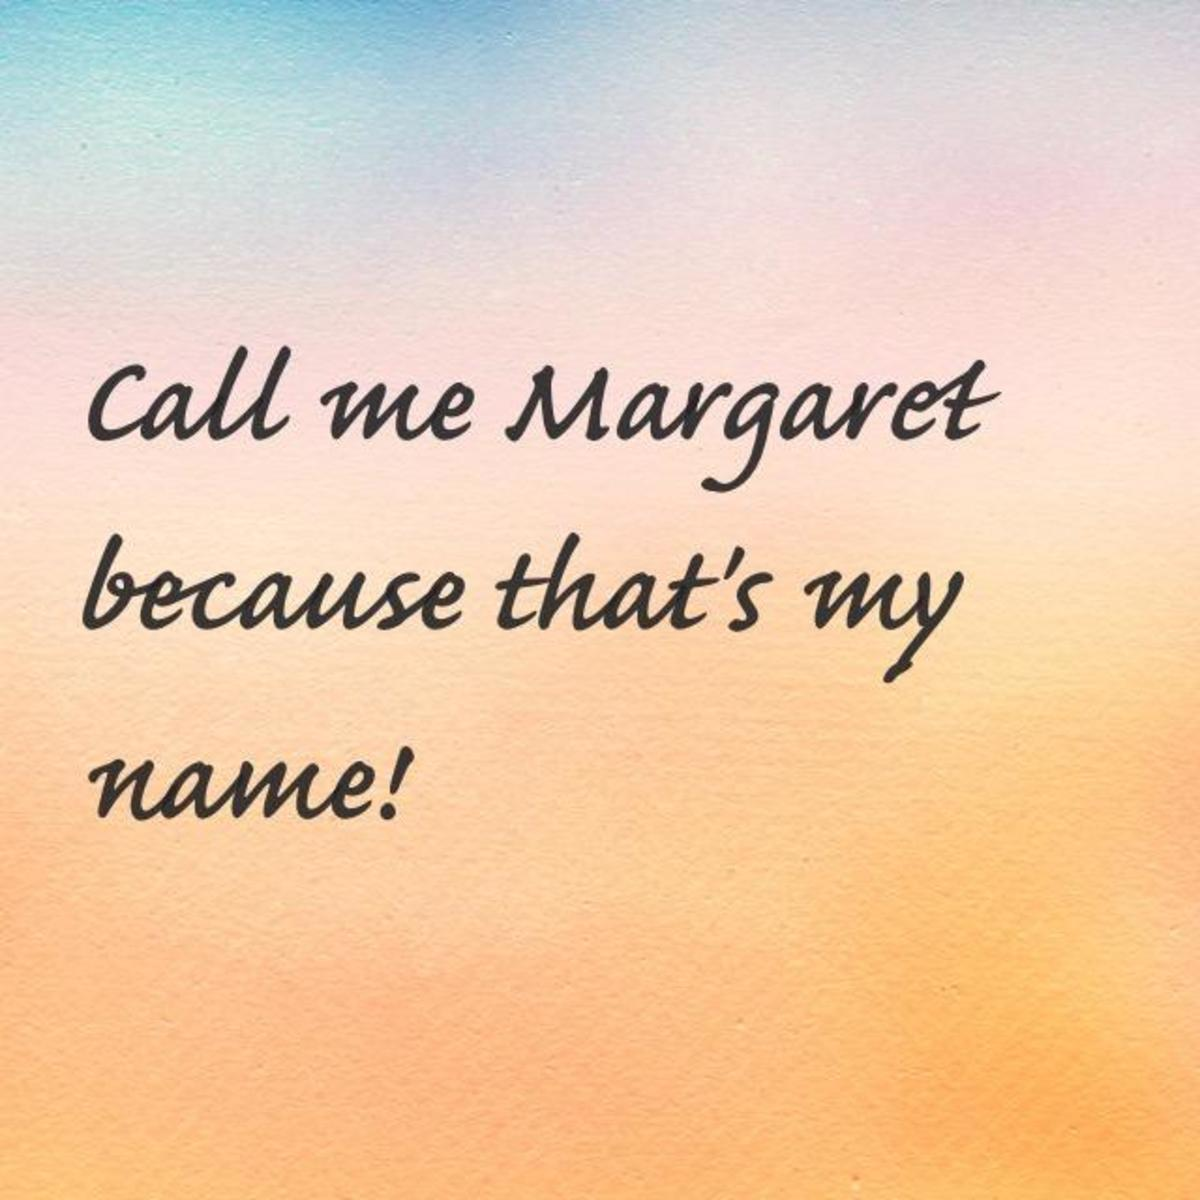 call-me-margaret-because-thats-my-name